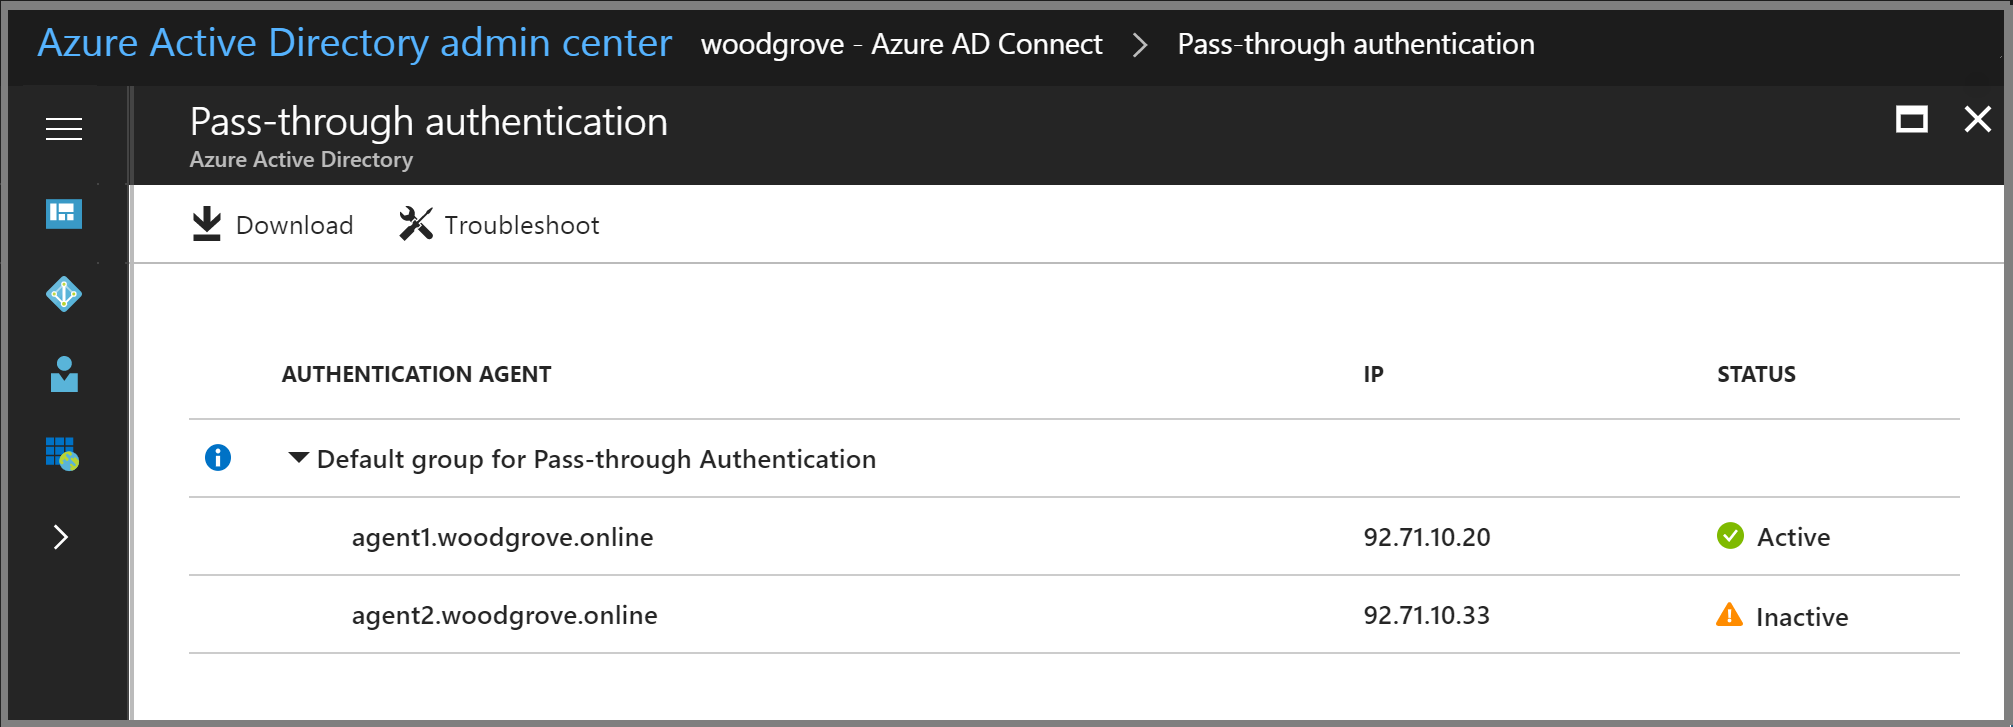 Azure AD Connect: Troubleshoot Pass-through Authentication